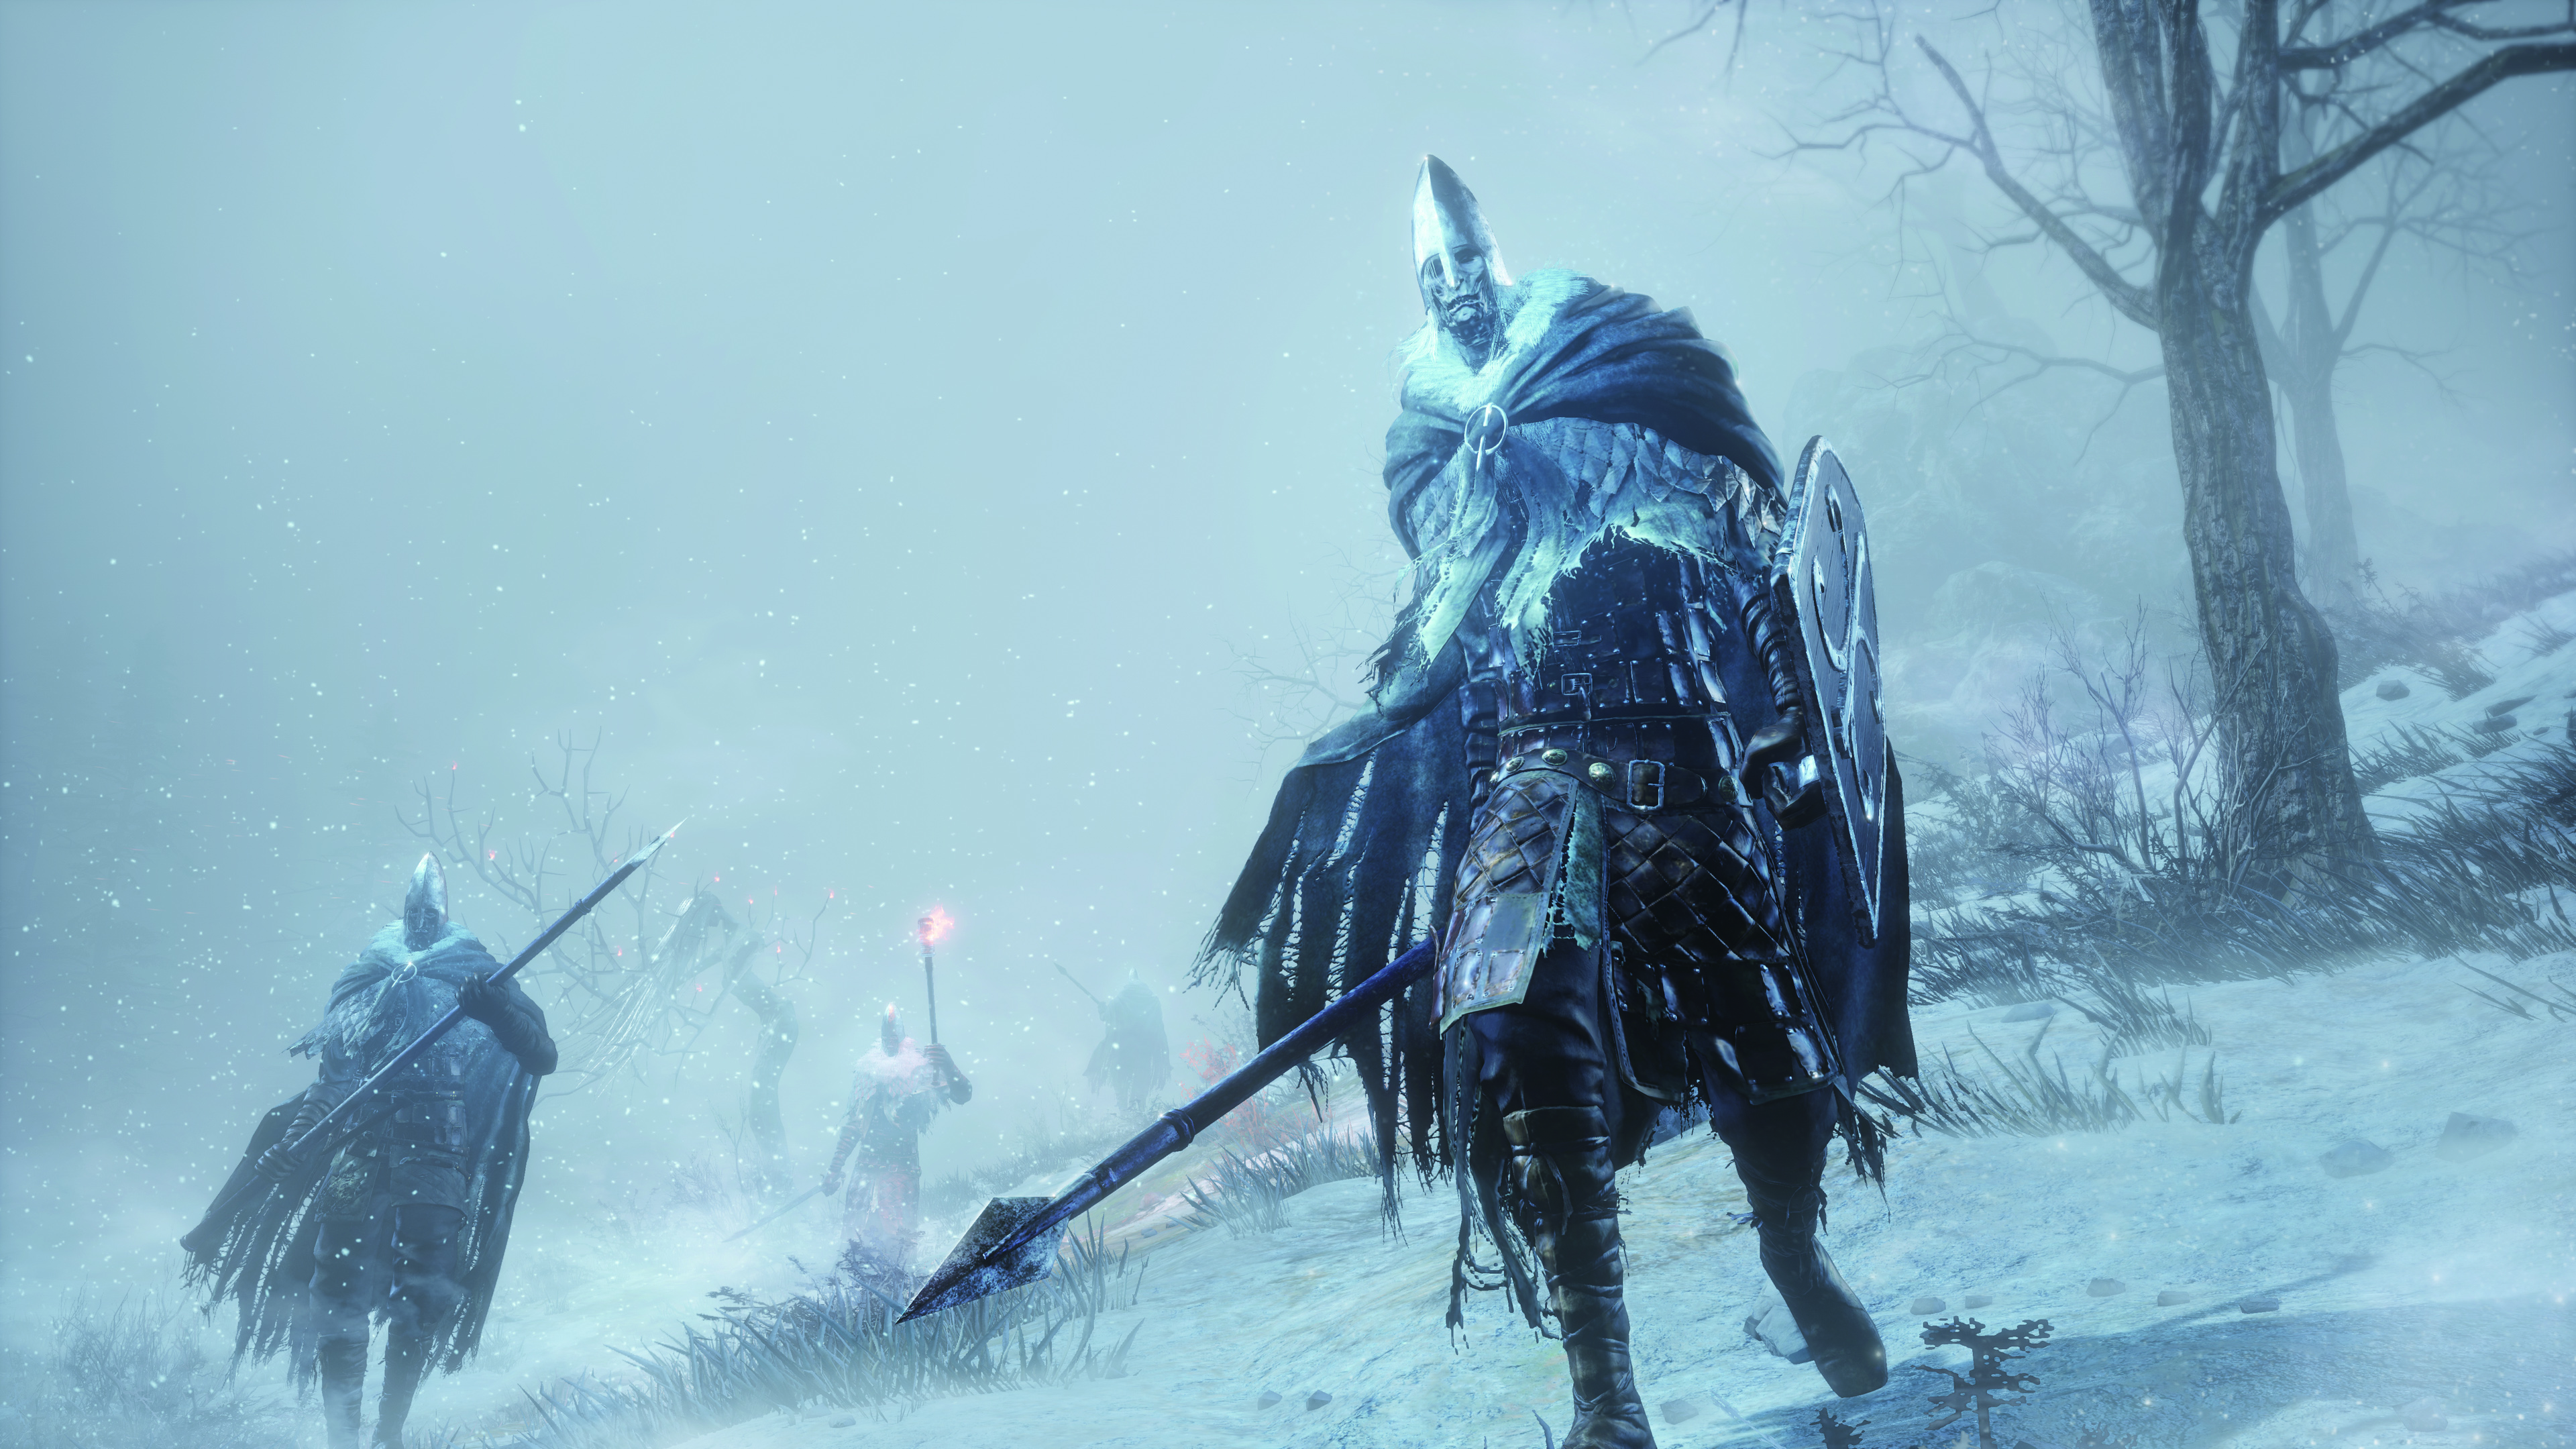 'Ashes of Ariandel' mistakenly released early, Bandai apologizes for error